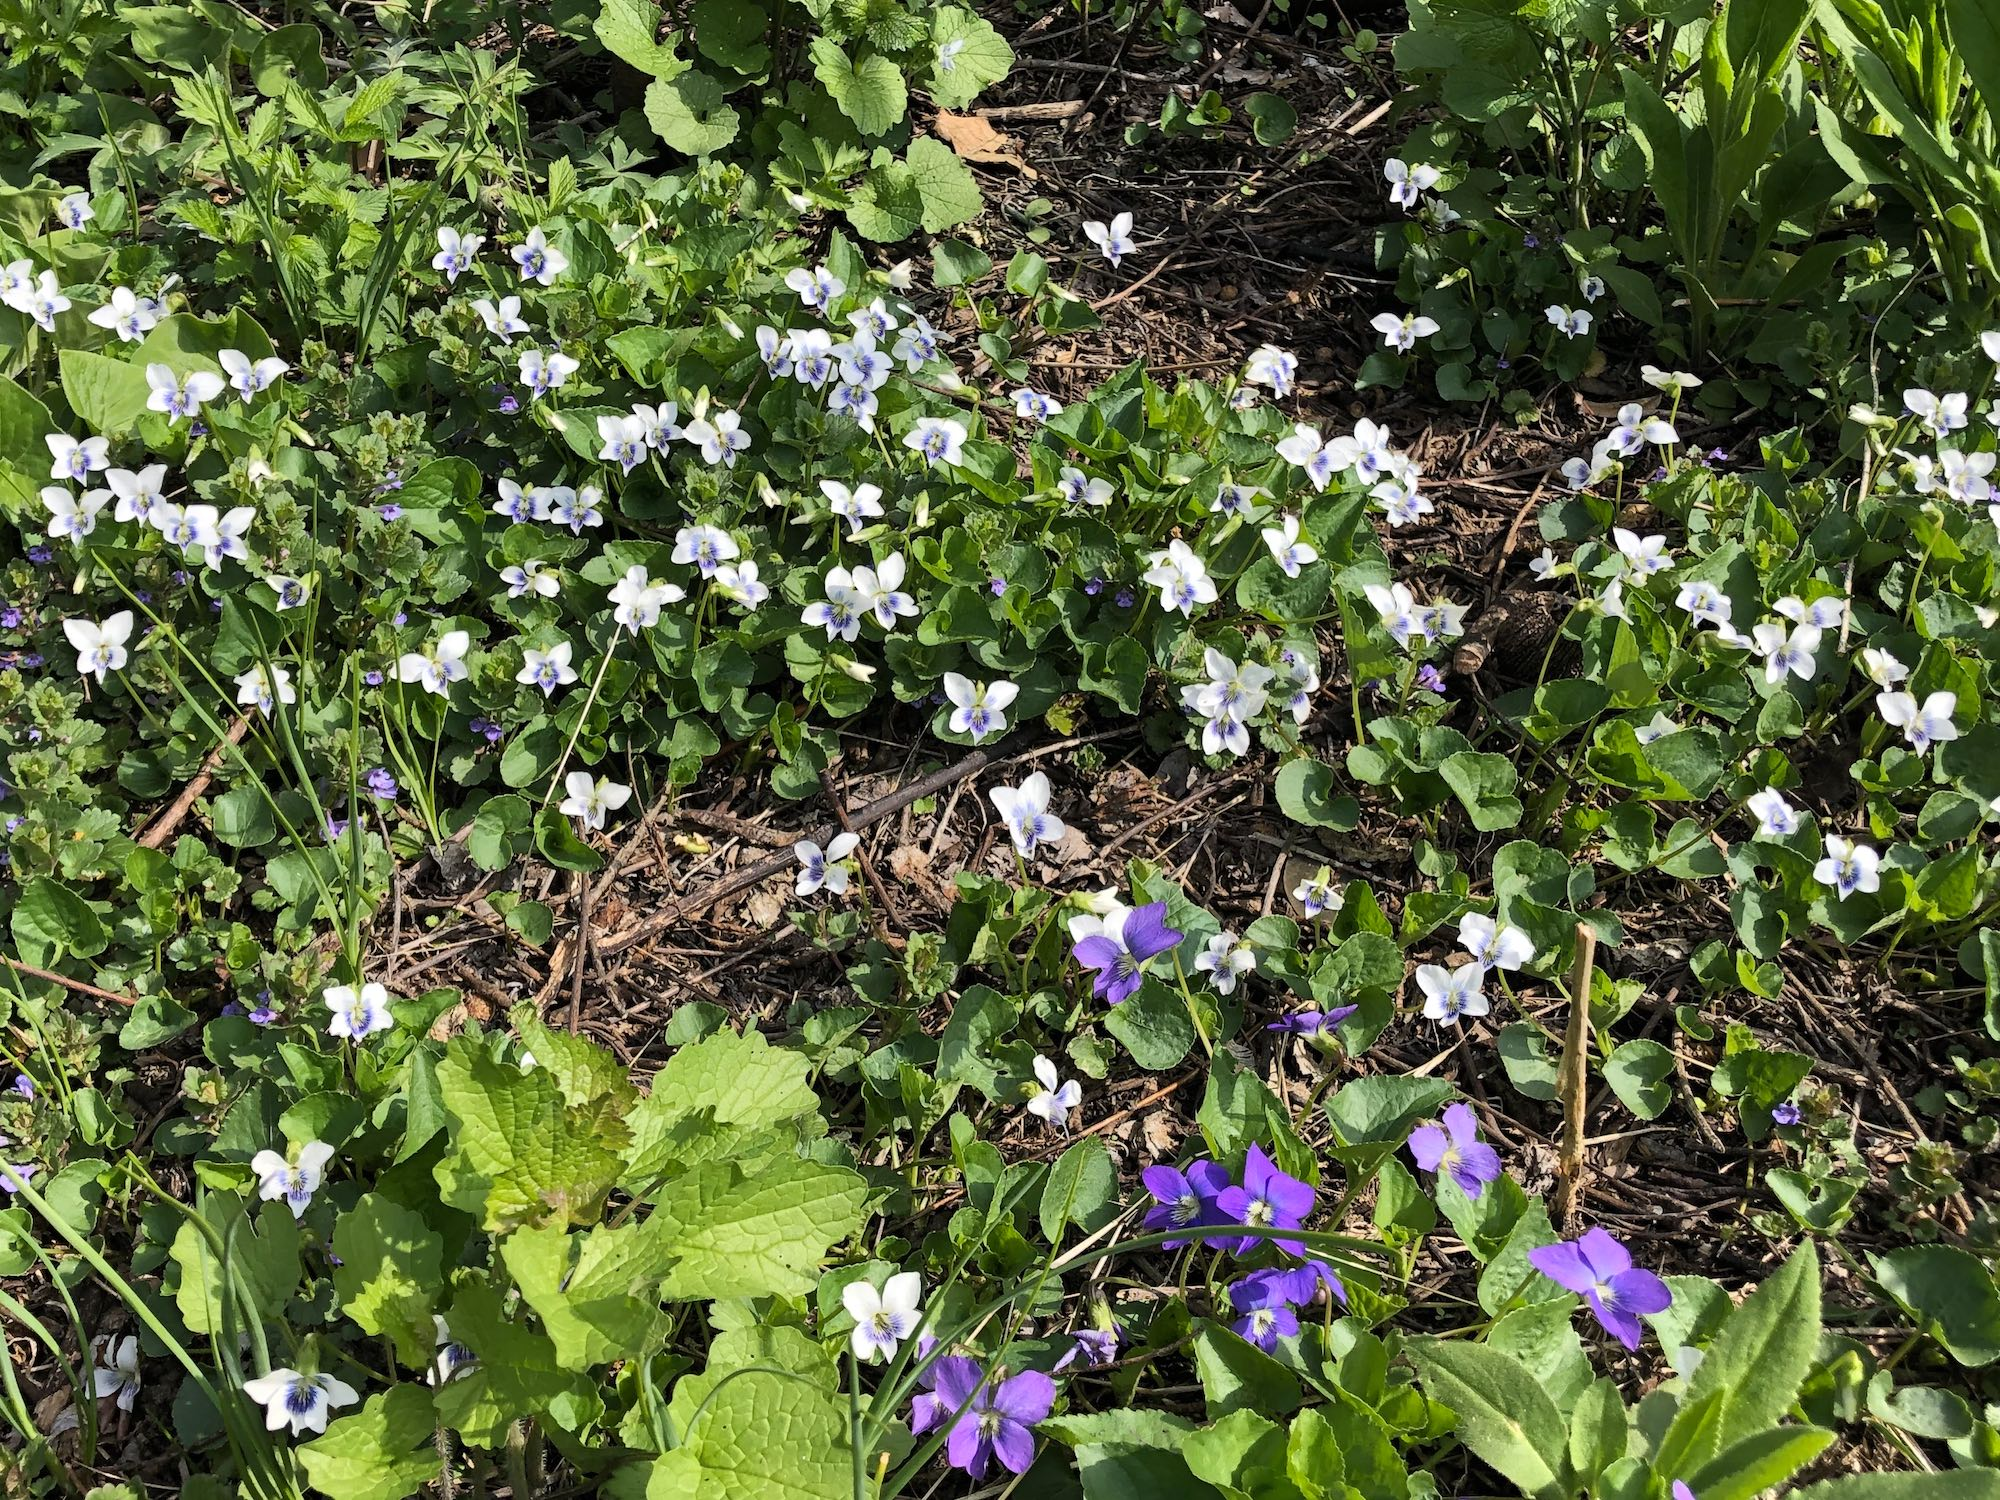 Wood Violets near the Duck Pond on April 25, 2019.